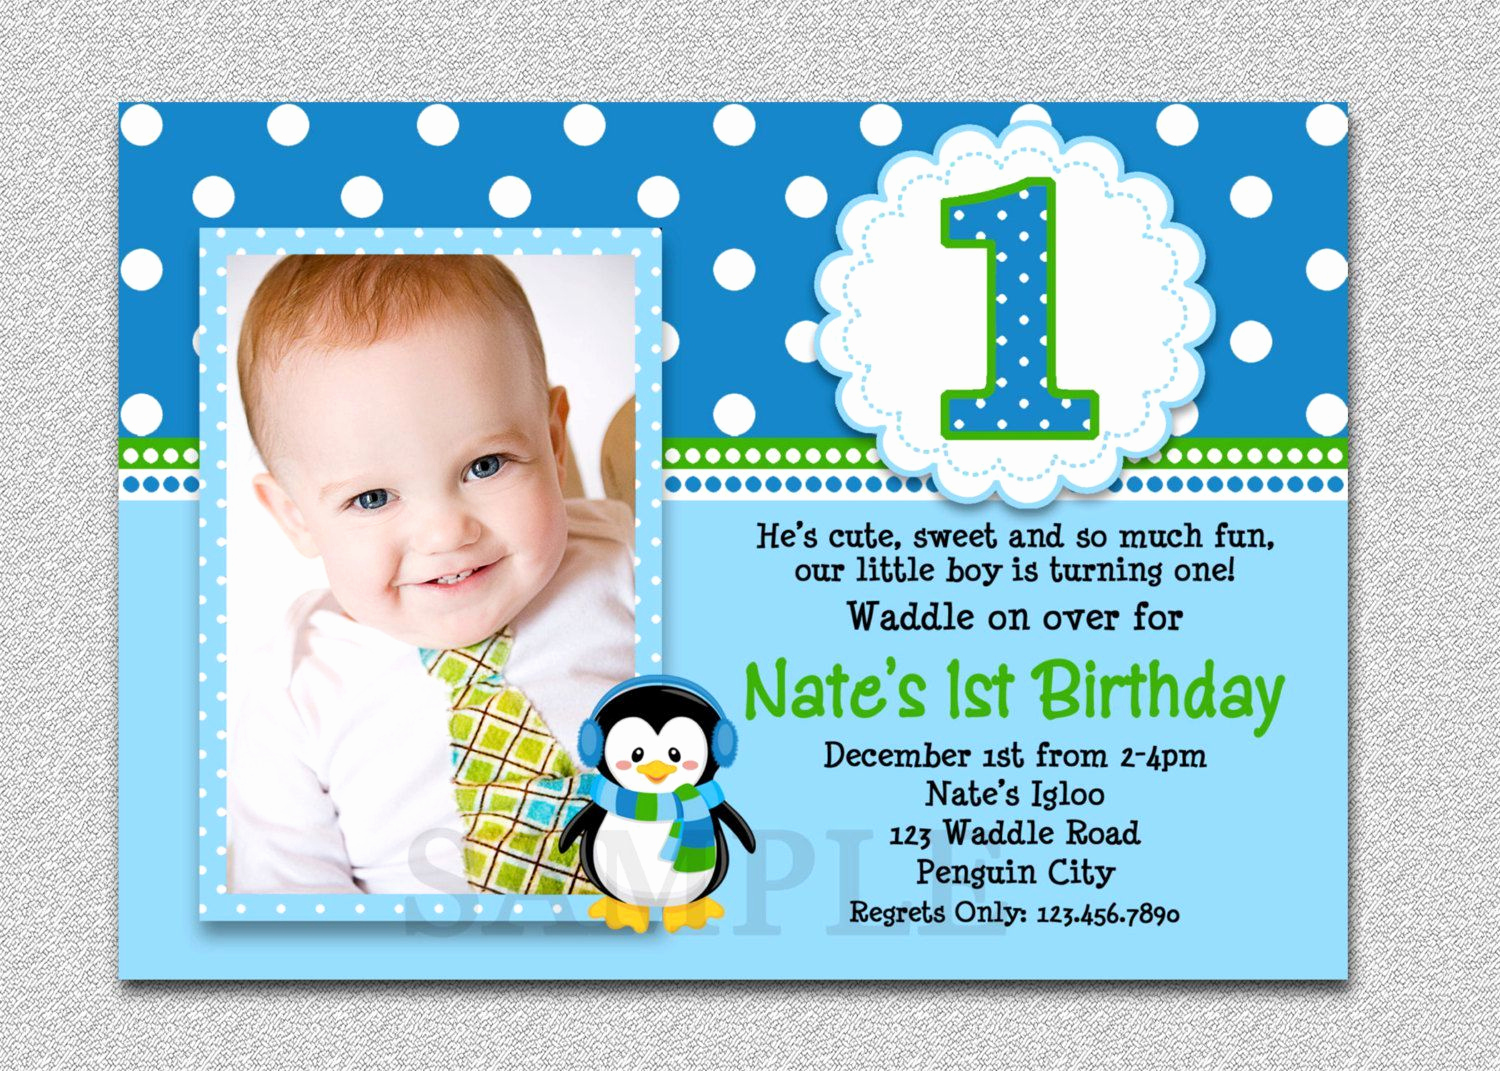 1st Birthday Invitation Template Beautiful 1st Birthday and Baptism Bined Invitations